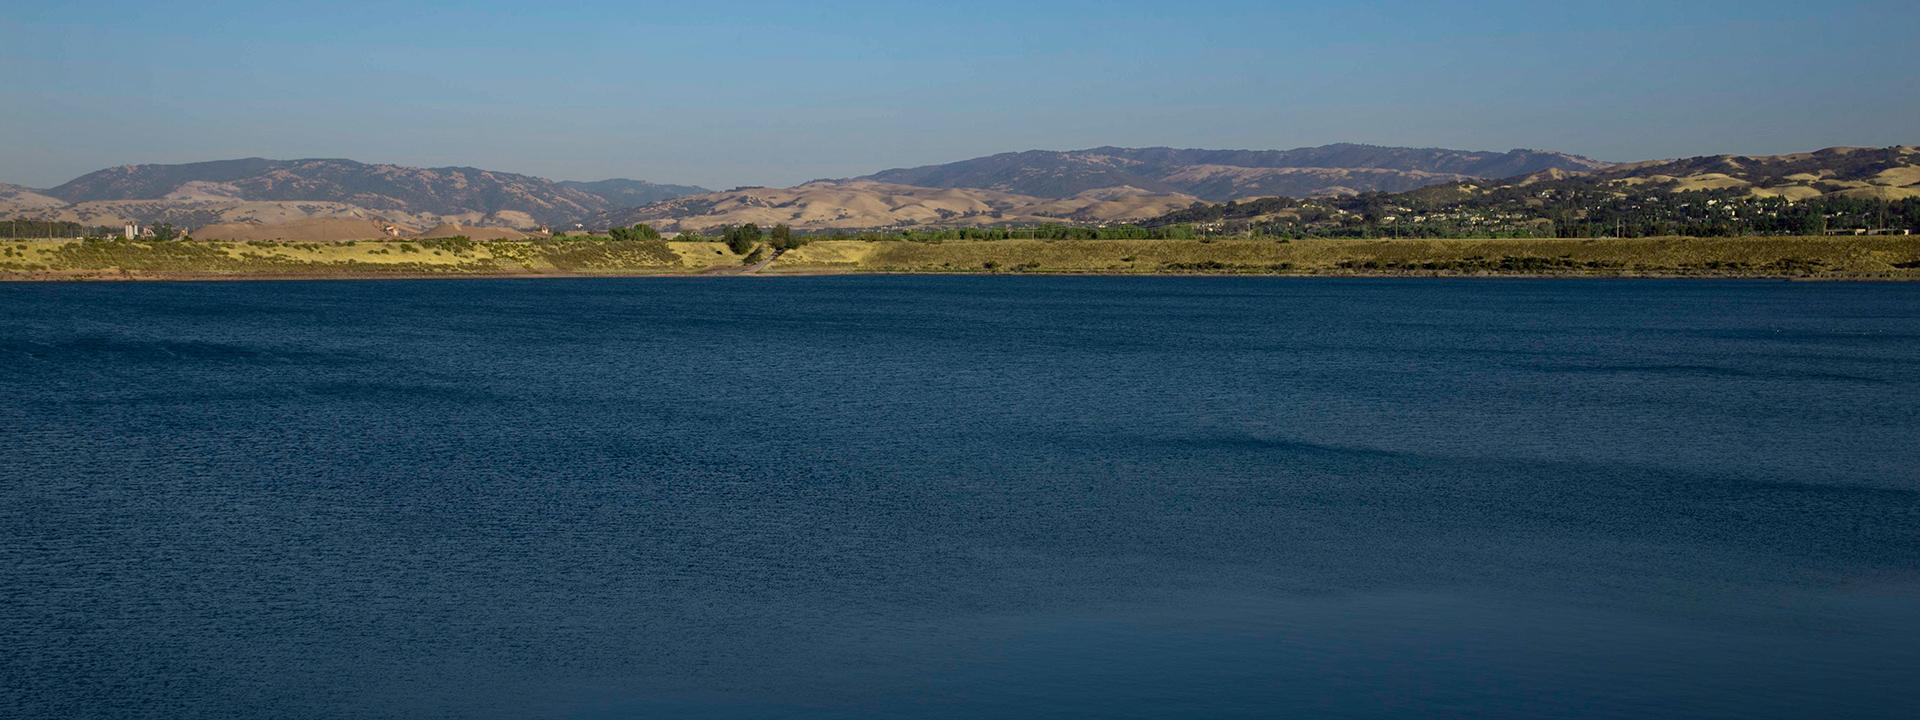 Chain of Lakes with city of Pleasanton and mountains in the background